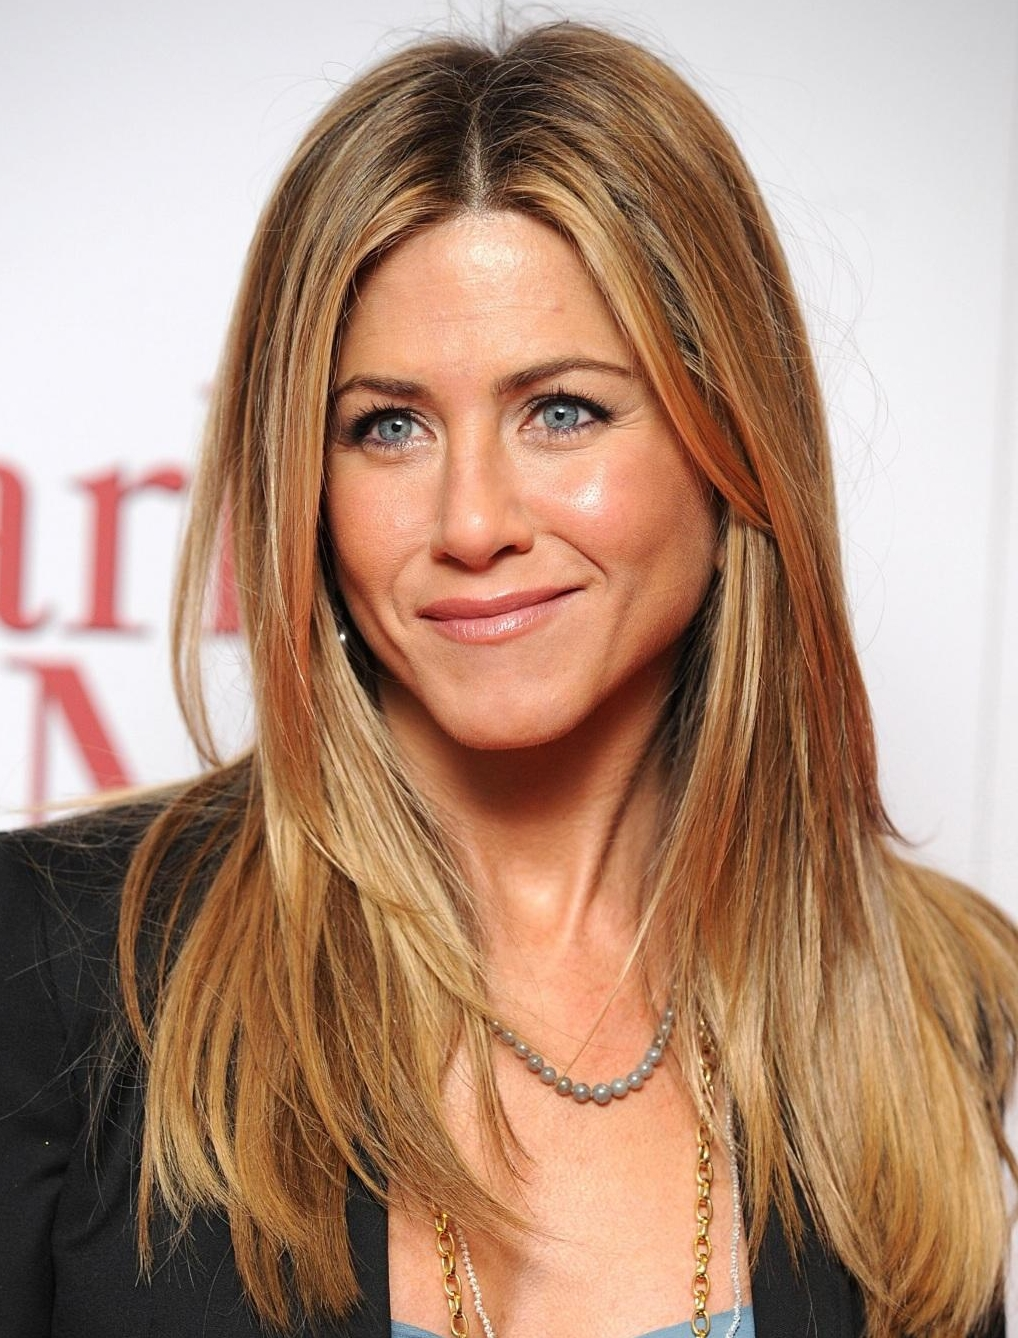 pics Jennifer Aniston born February 11, 1969 (age 49)